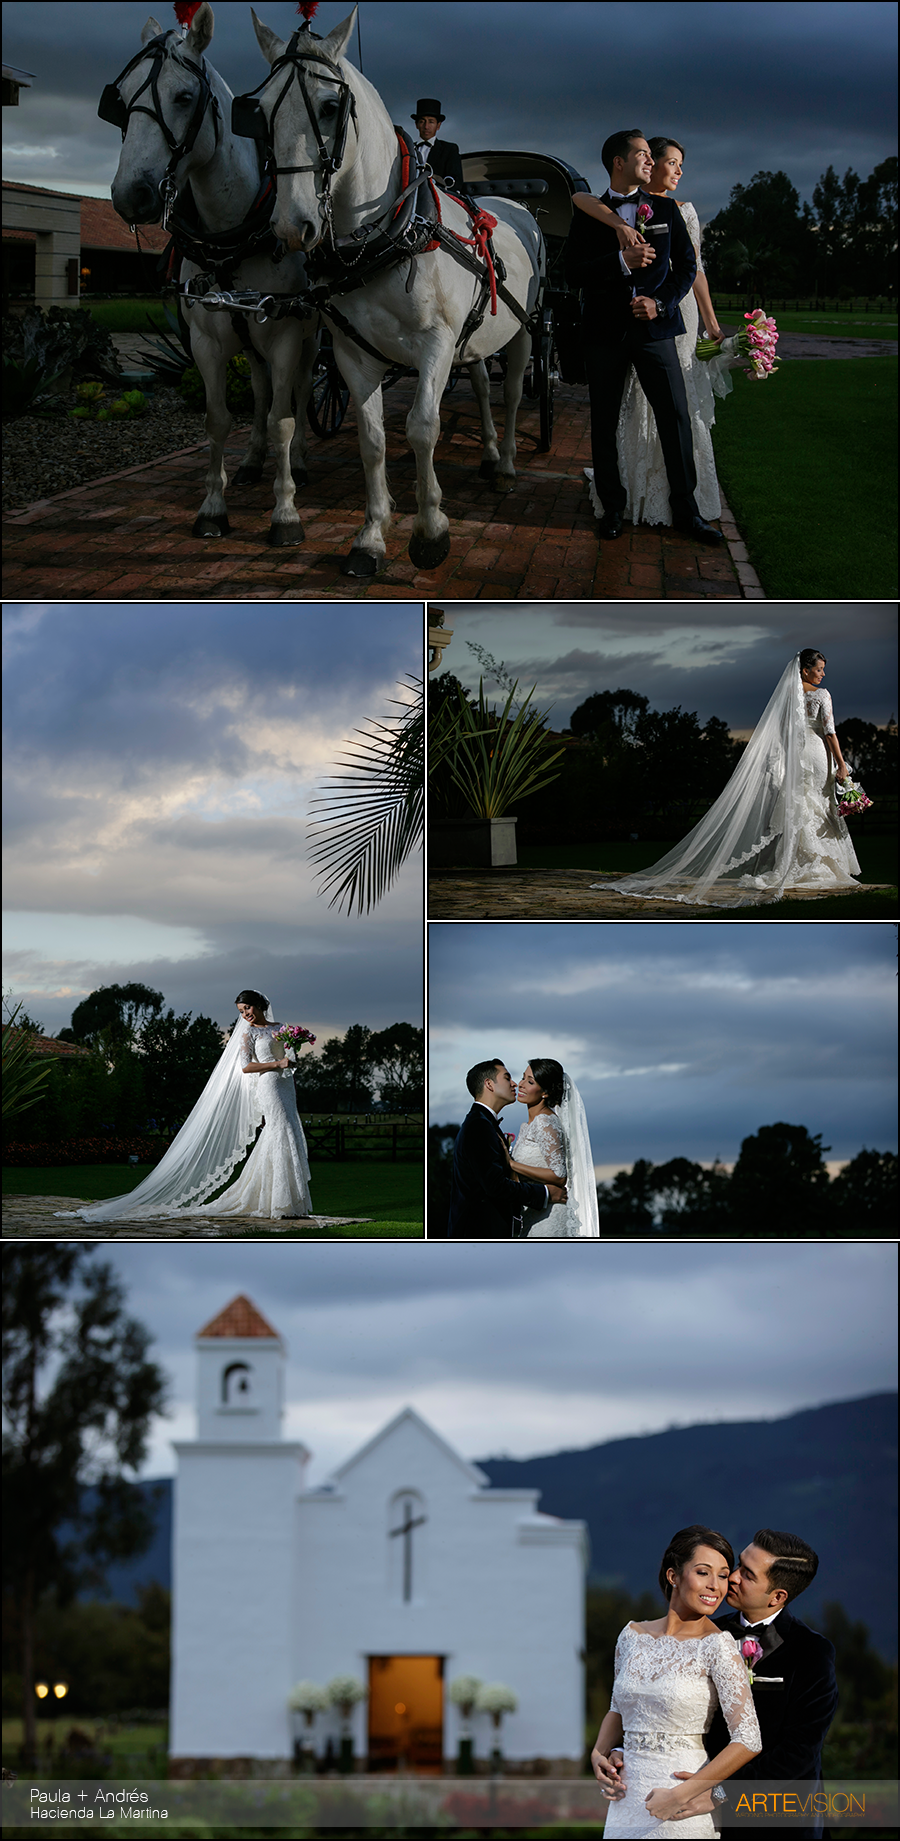 Wedding-Photography-La-Martina-Paula-Andres-21